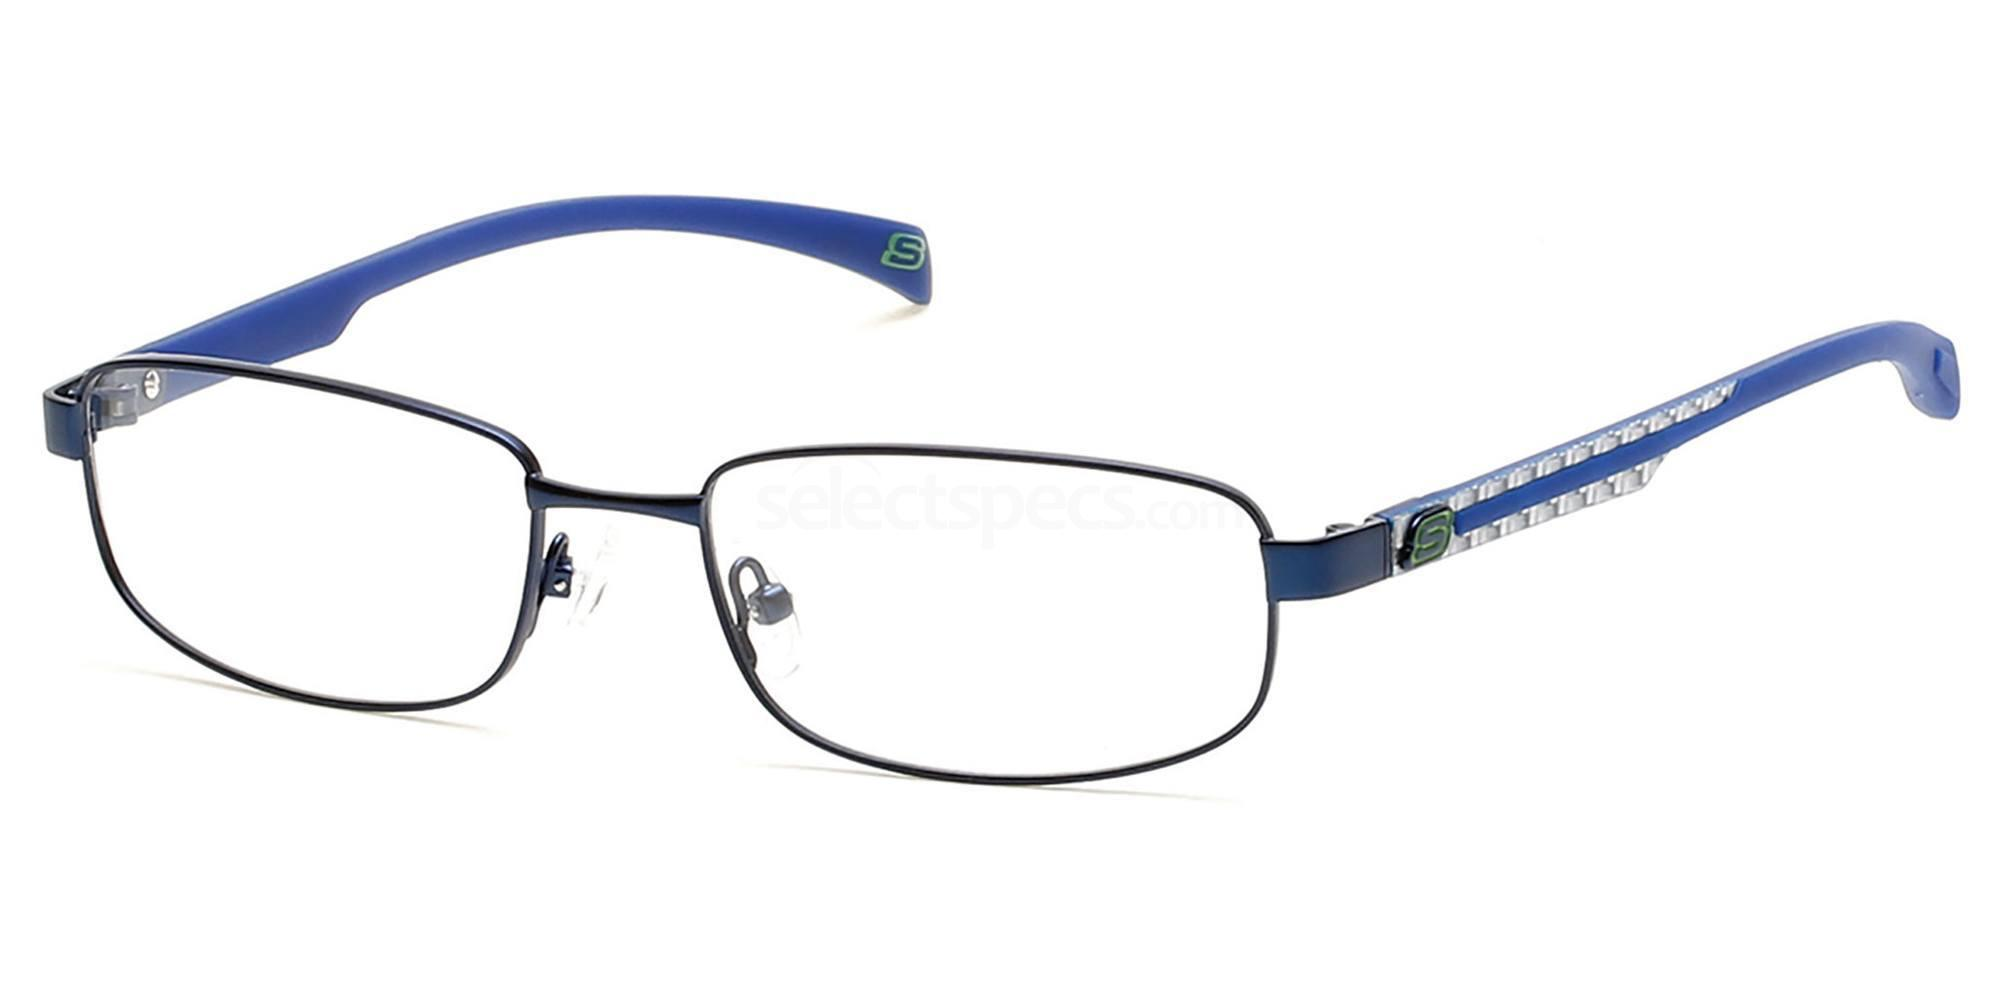 091 SE3181 Glasses, Skechers